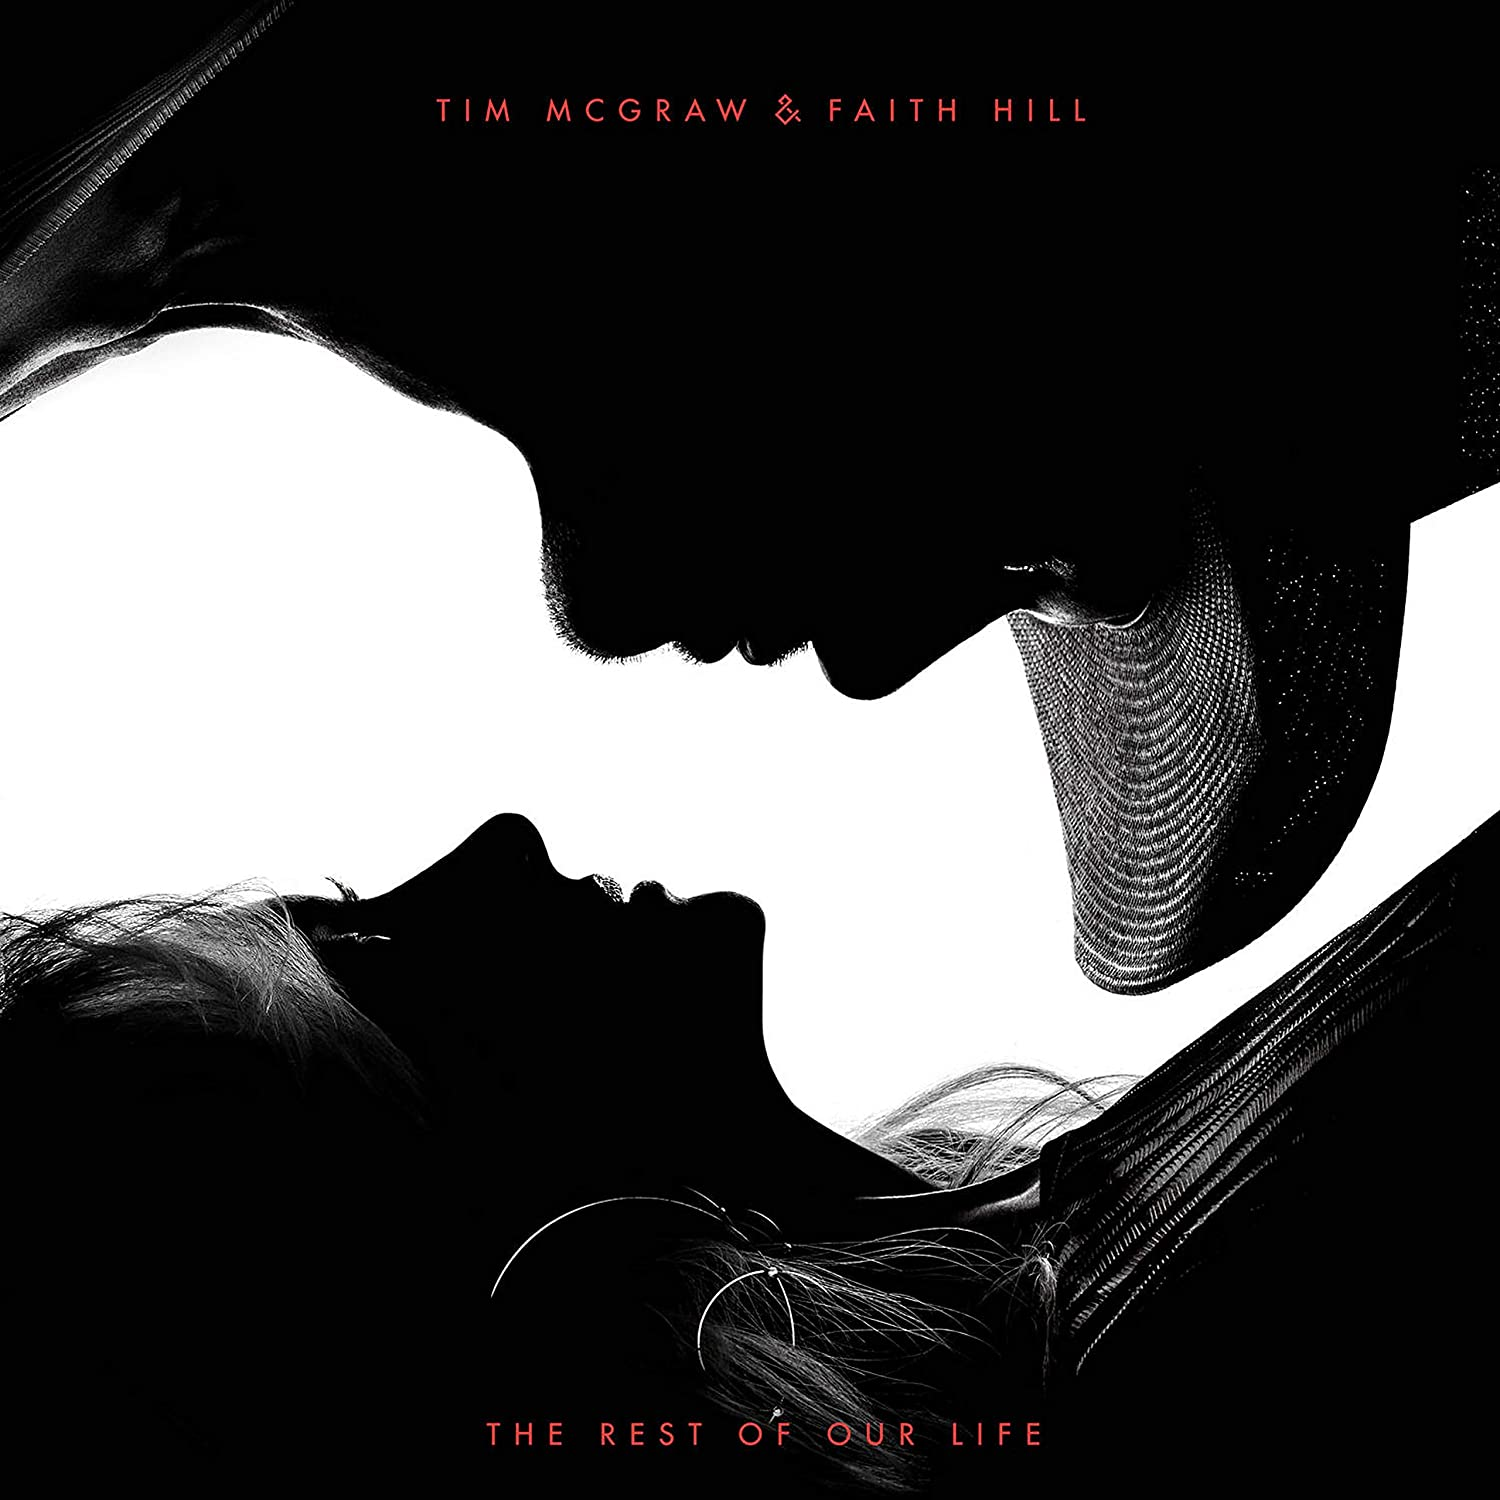 DOUBLE Z Tim McGraw /& Faith Hill The Rest of Our Life Poster Canvas Print Wall Art,20/×20 Inch